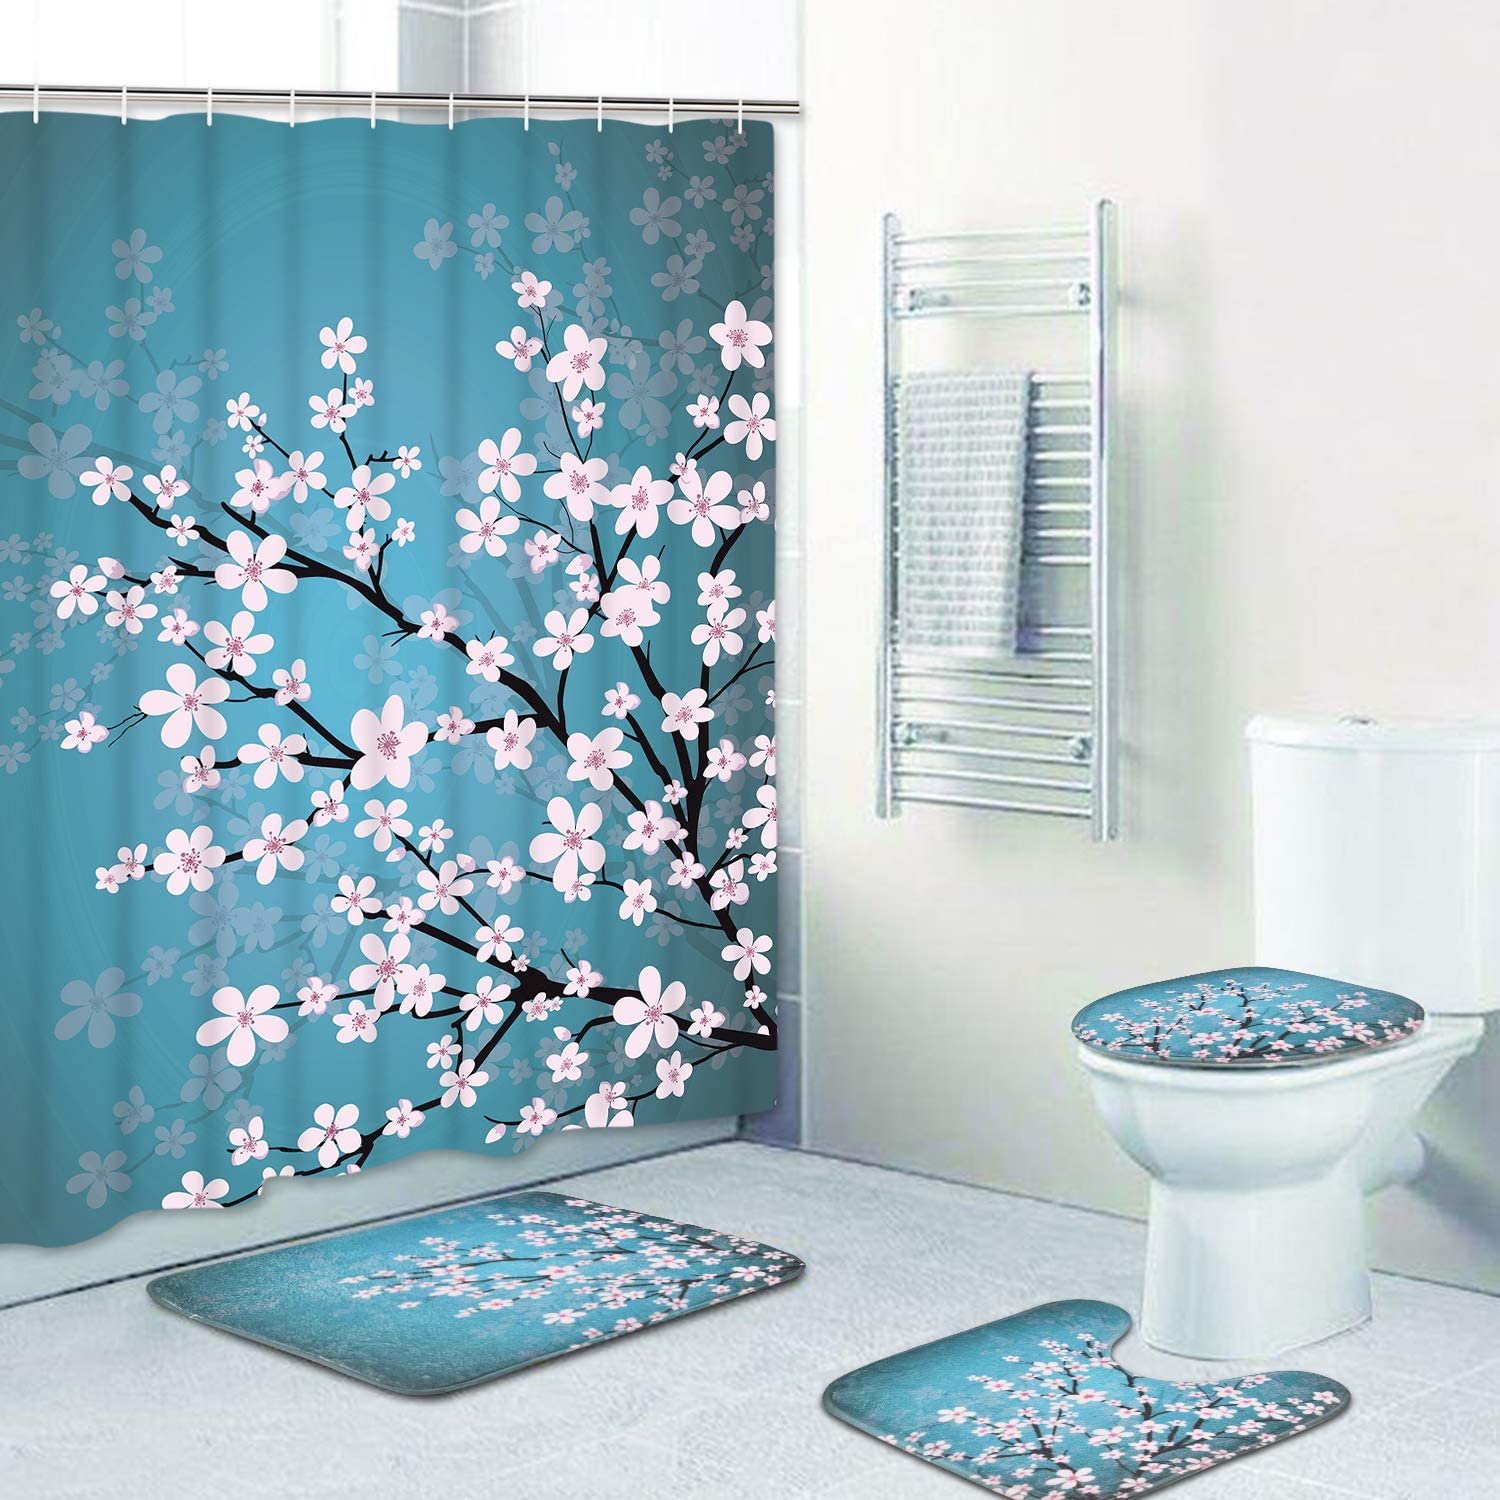 Cherry Blossoms Door Bath Mat Toilet Cover Rugs Shower Curtain Bathroom Set